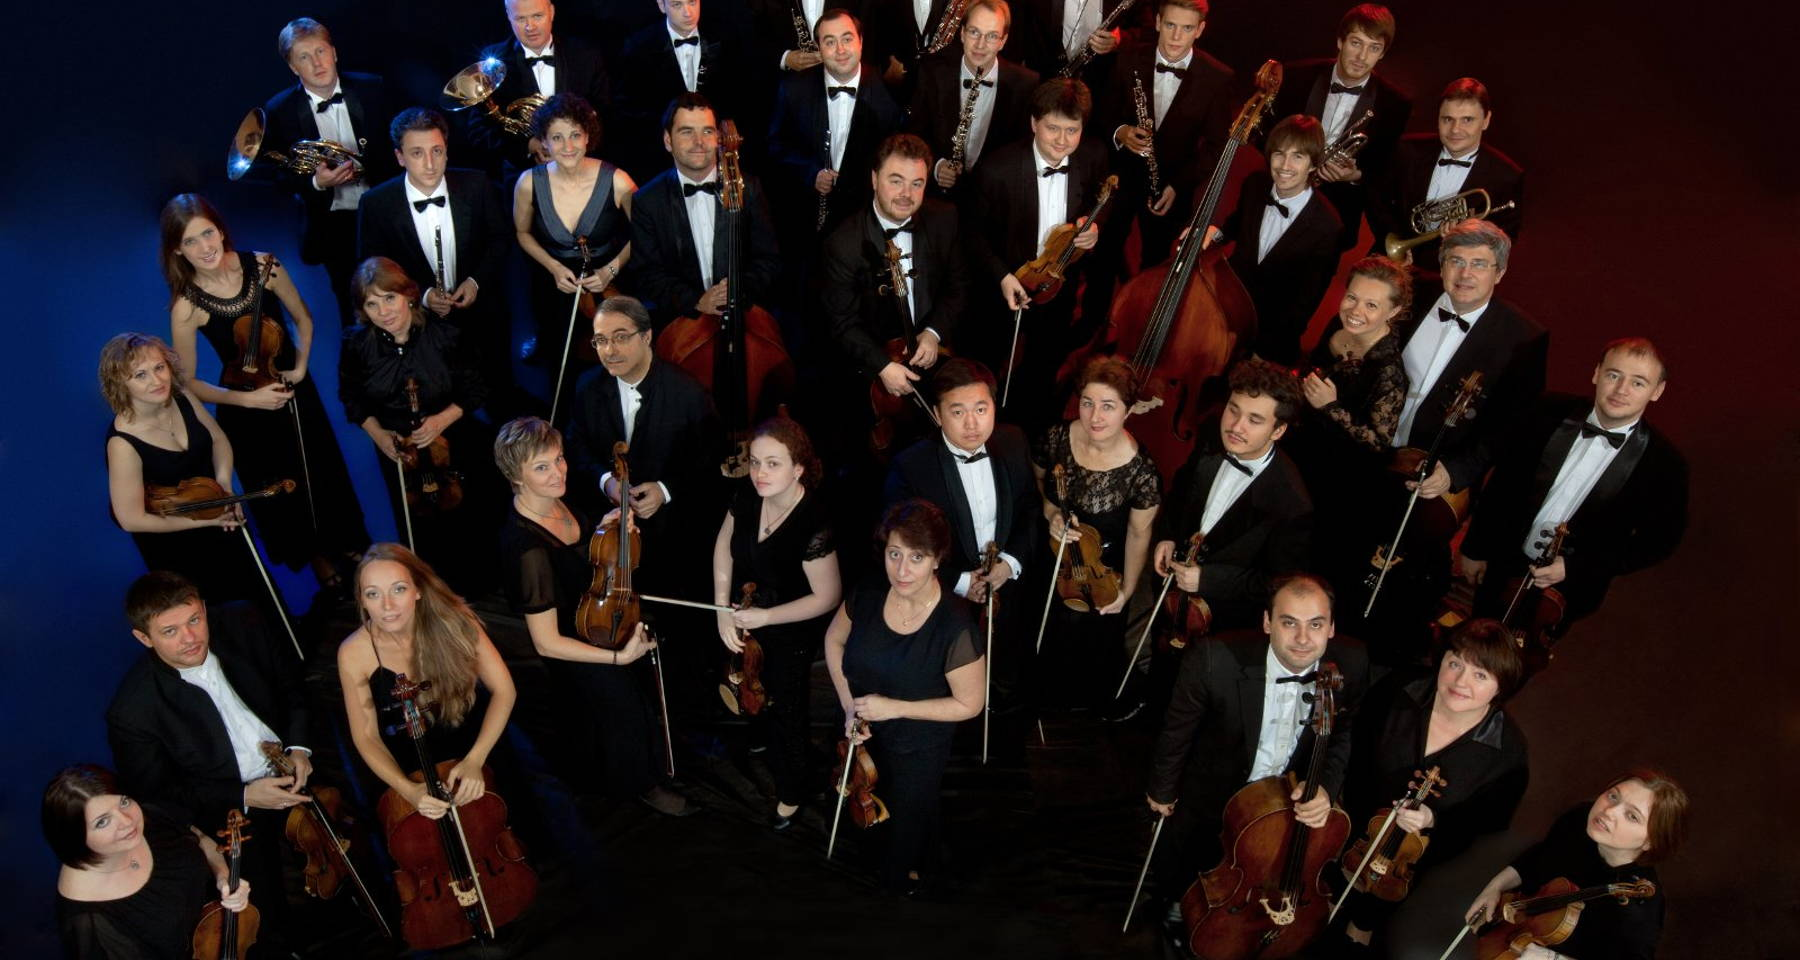 The Pavlolva Songs: An Orchestral Premiere!